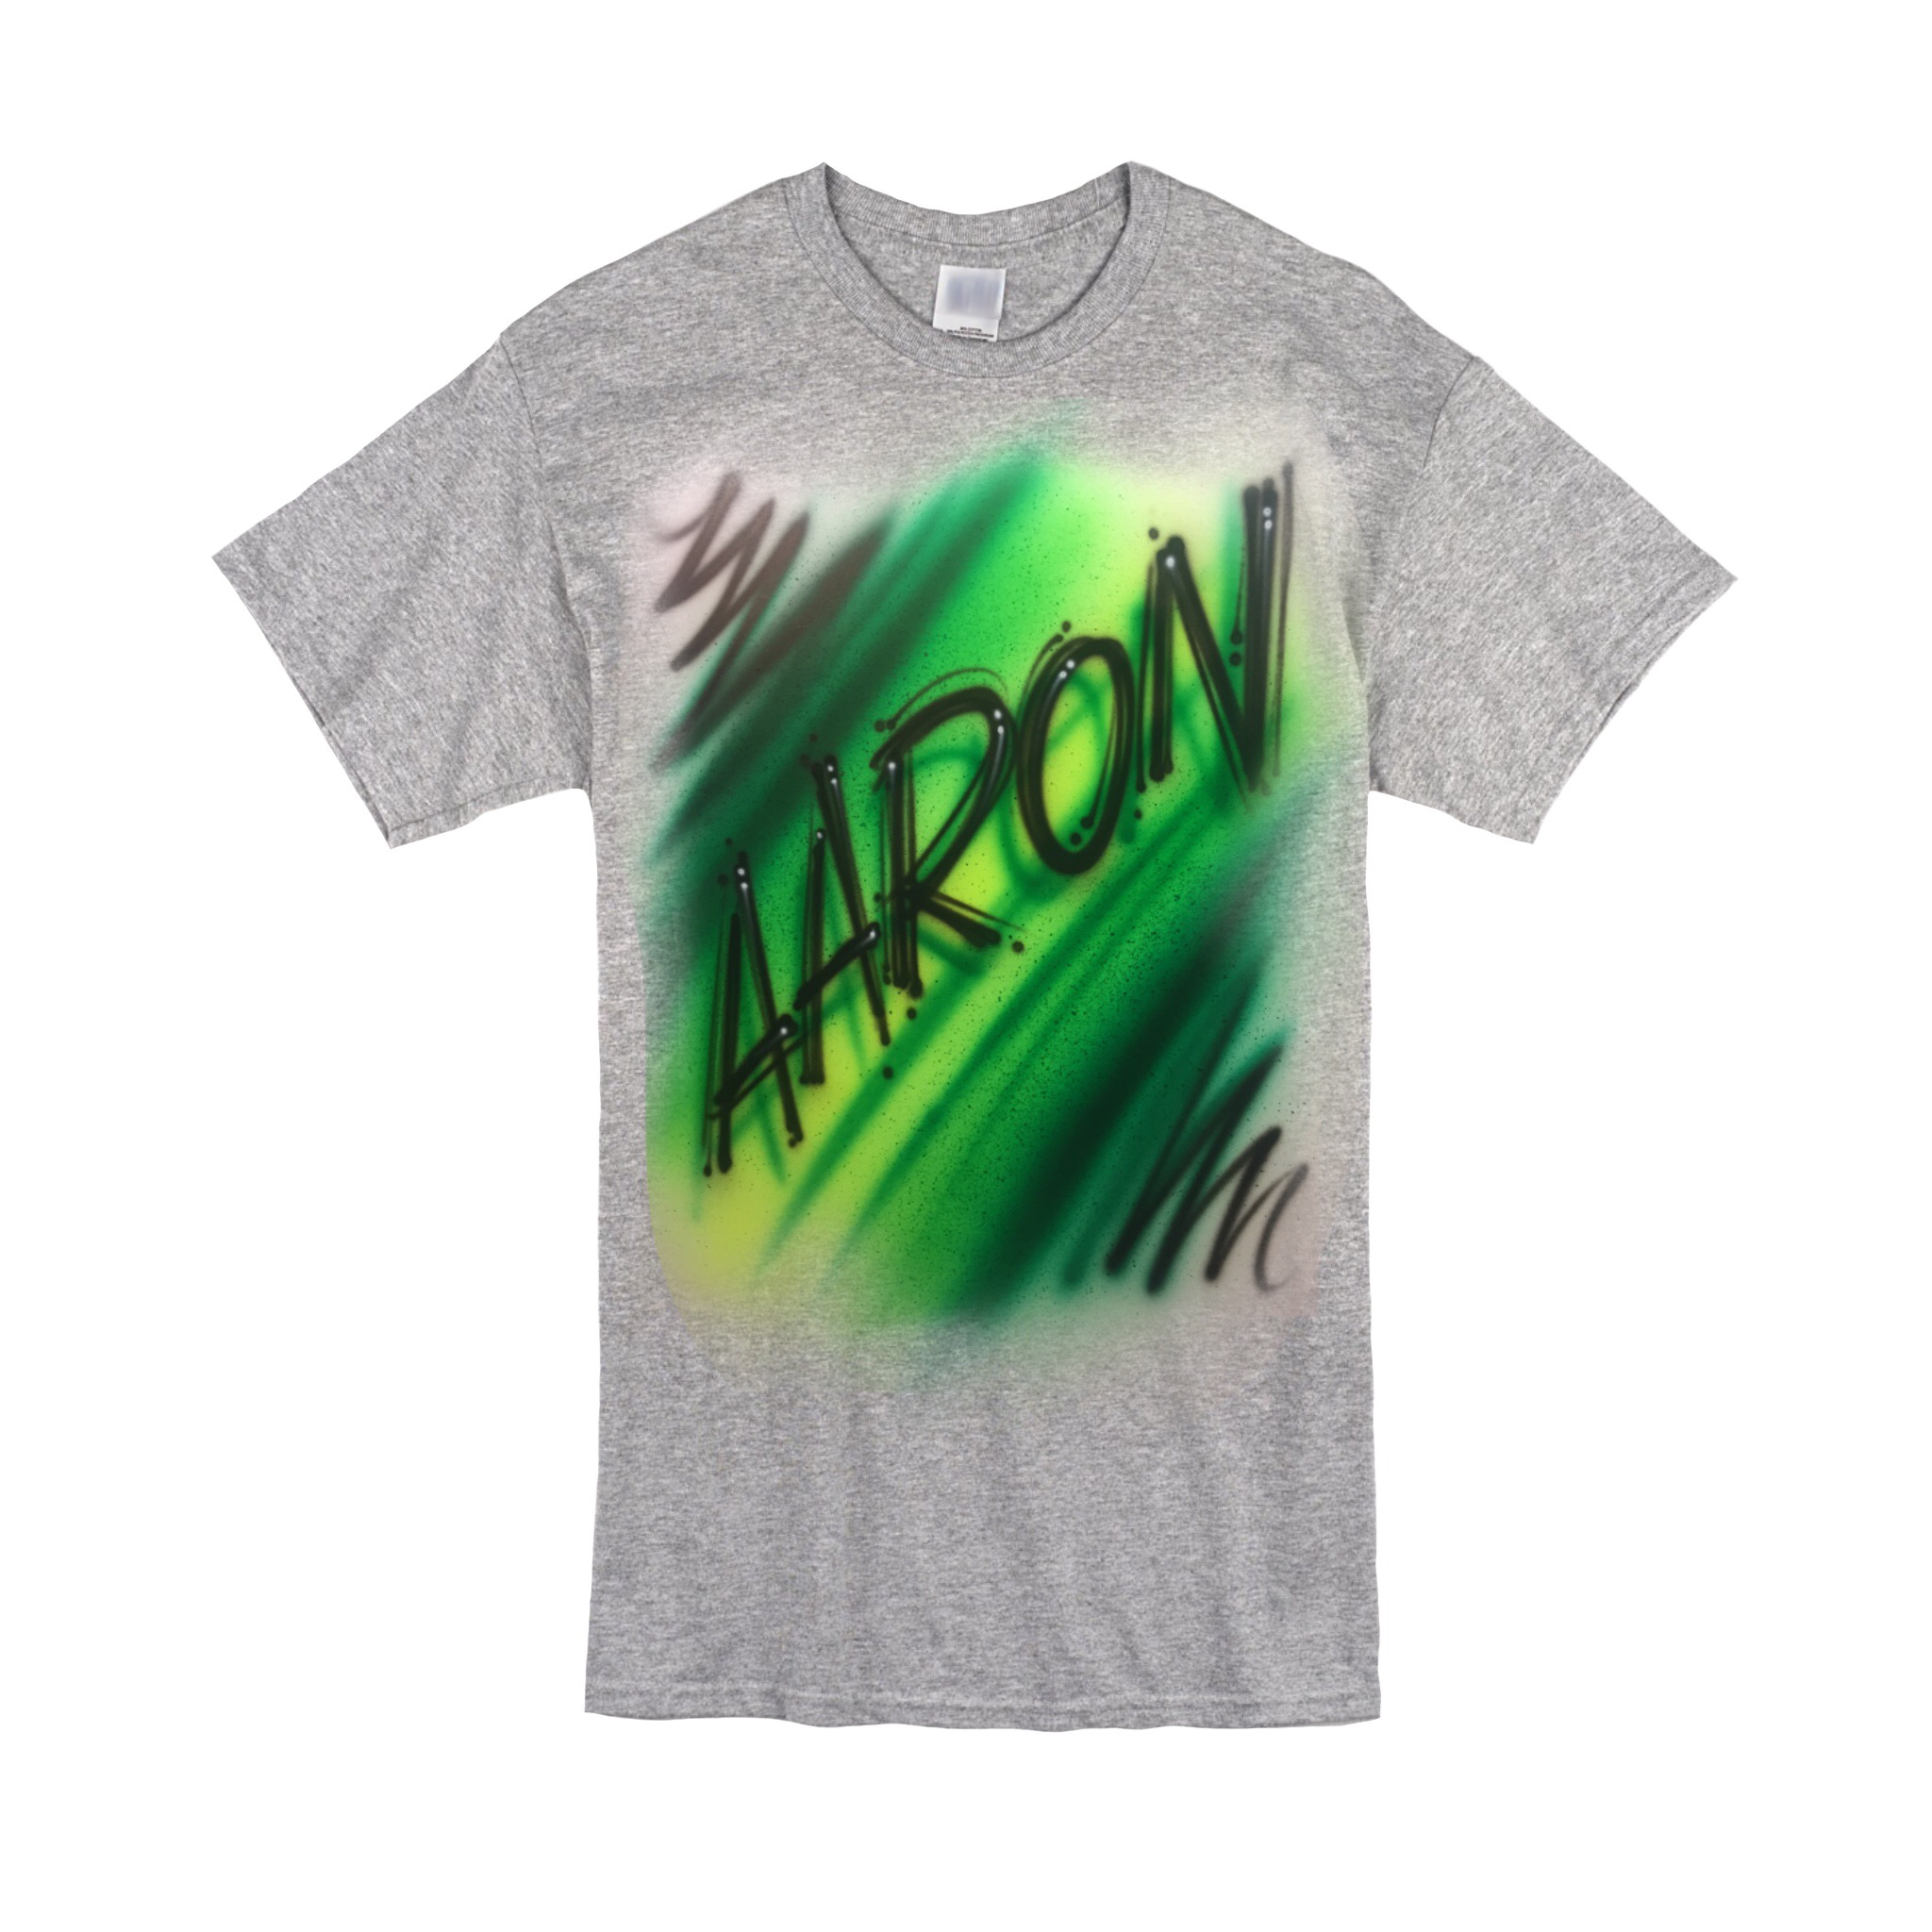 Scratch diagonal greens Tshirt